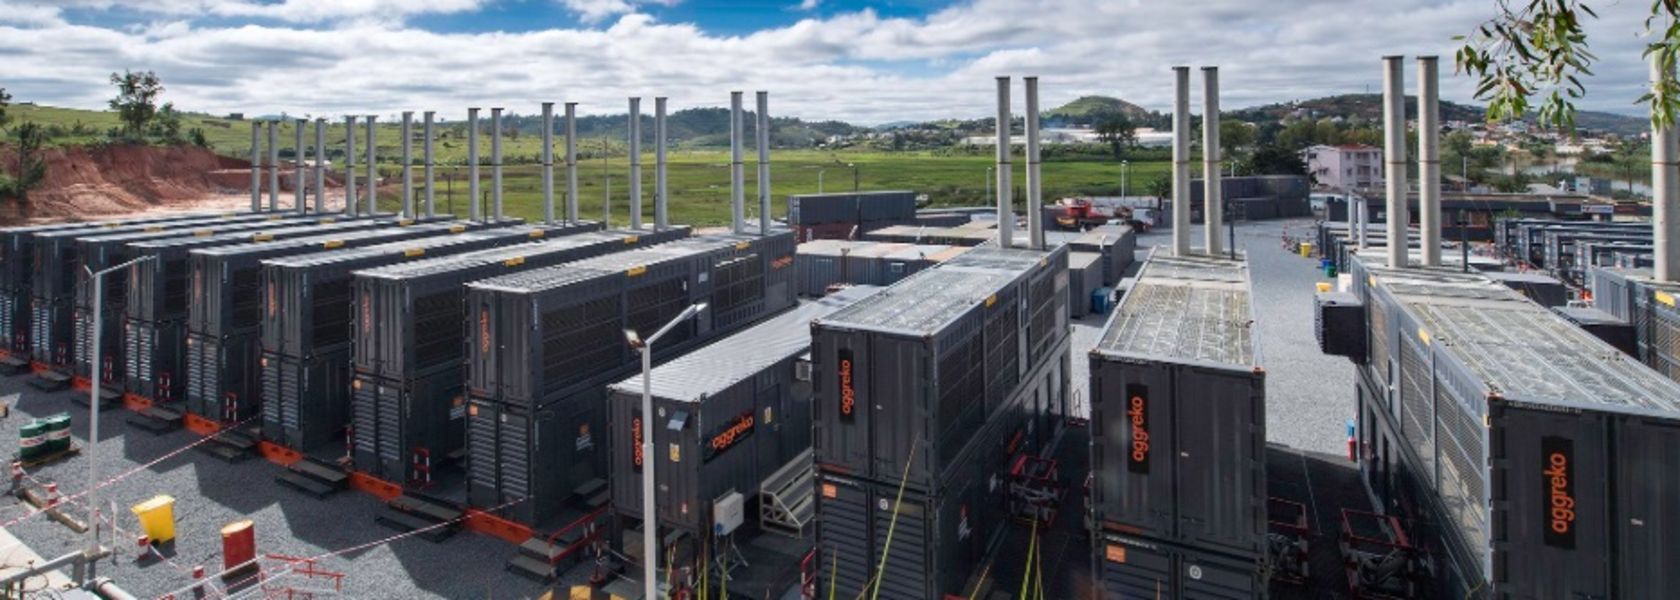 INNIO, Aggreko collab on power asset monitoring